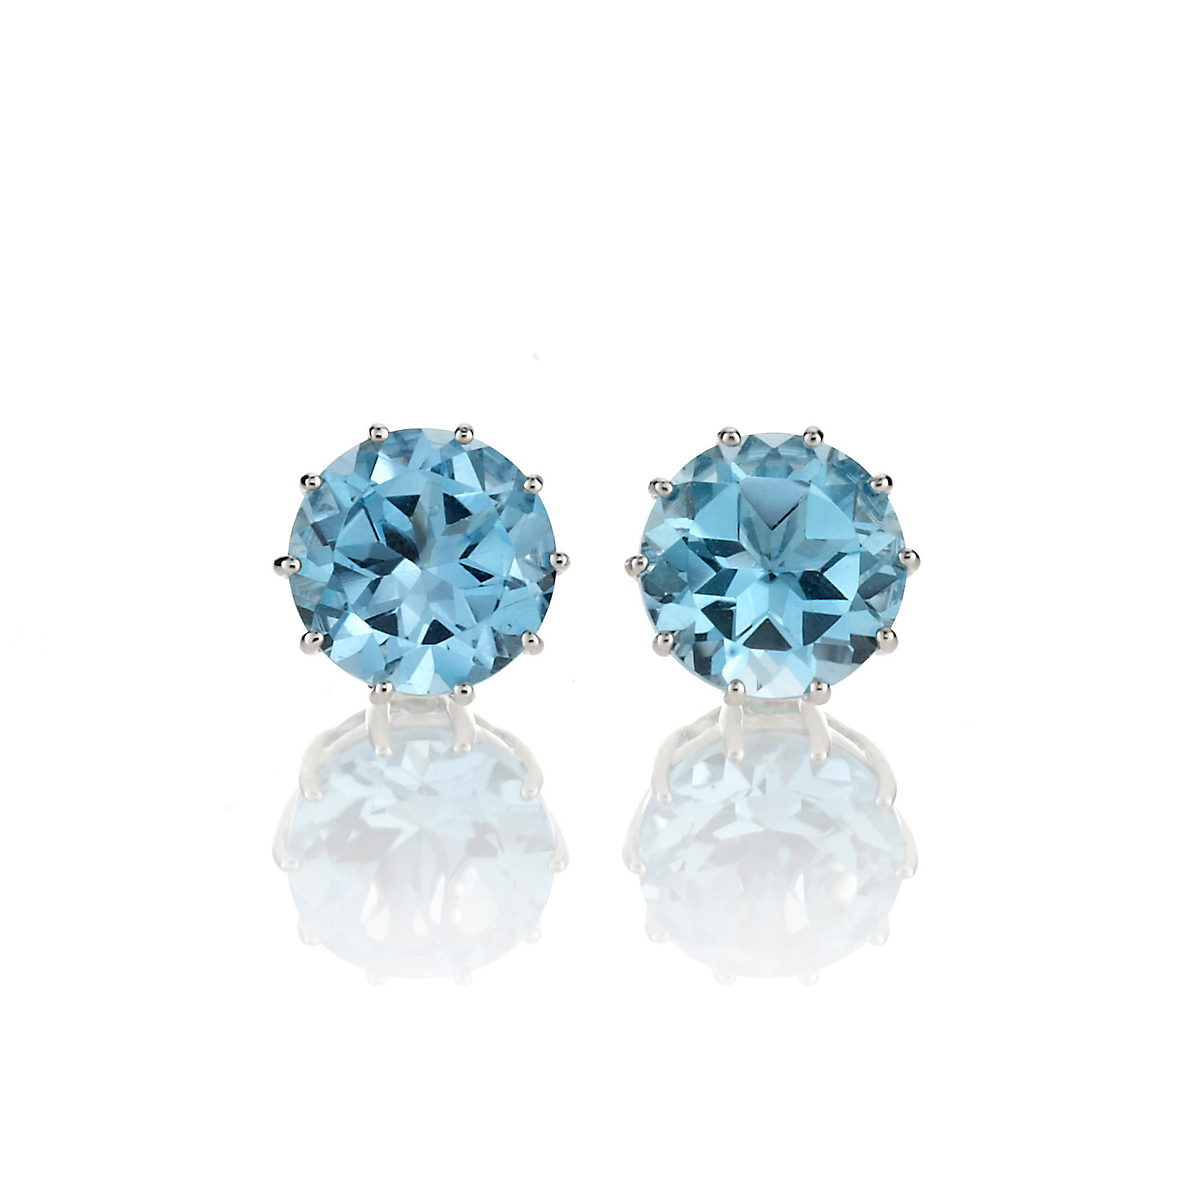 Gump's Swiss Blue Topaz Round Stud Earrings